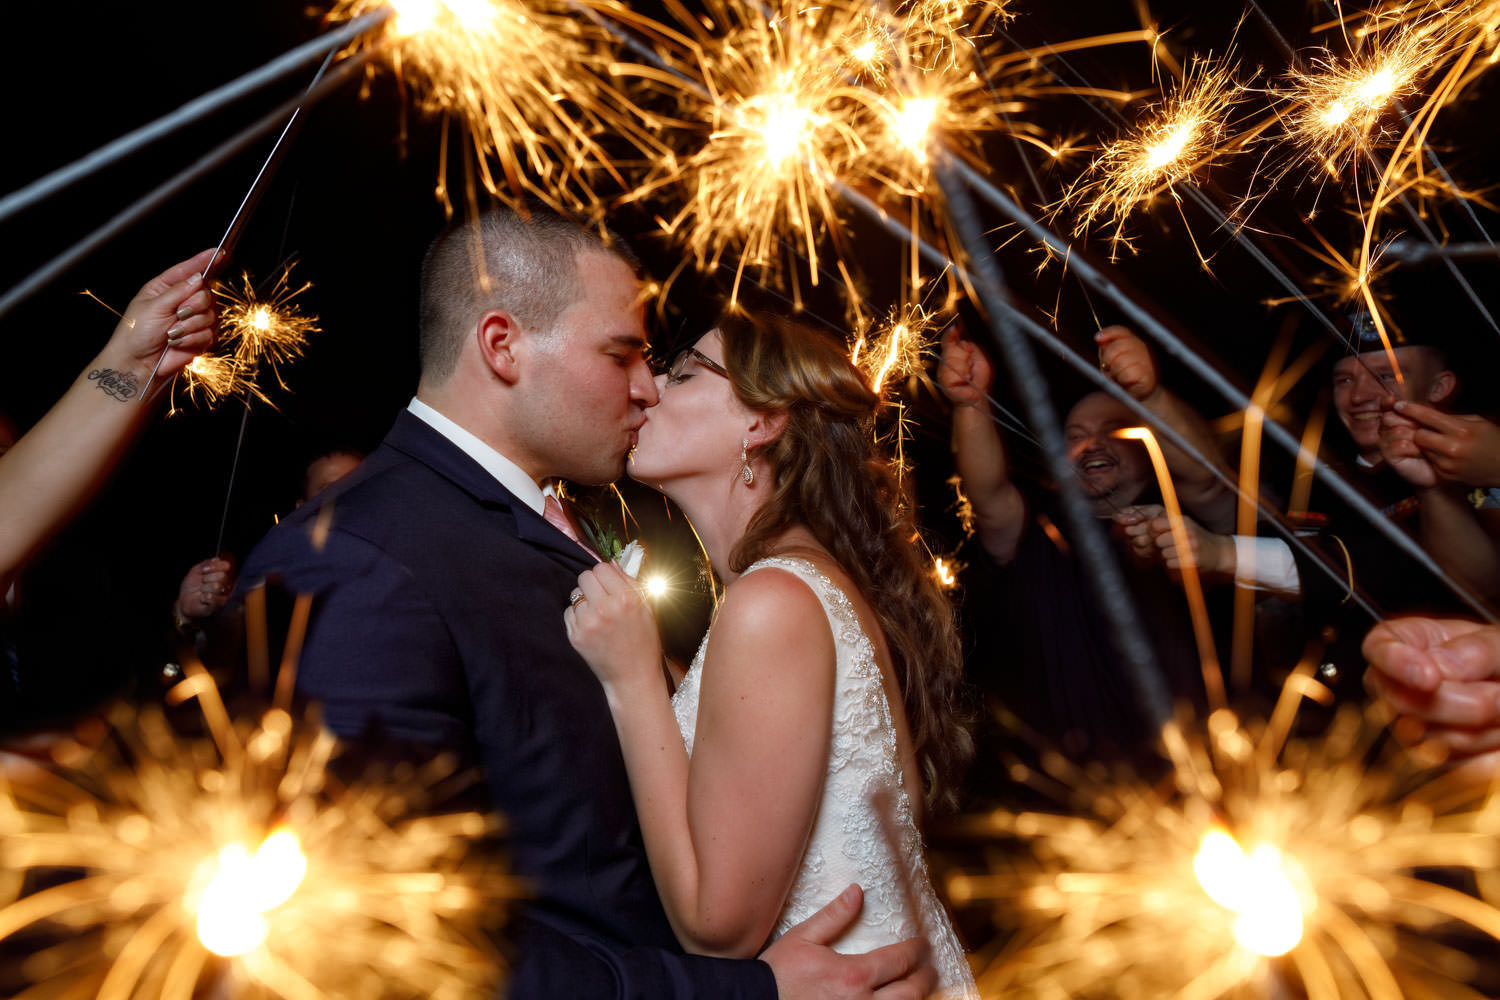 Night time with Bride and Groom Kissing with wedding guests with sparklers around the couple